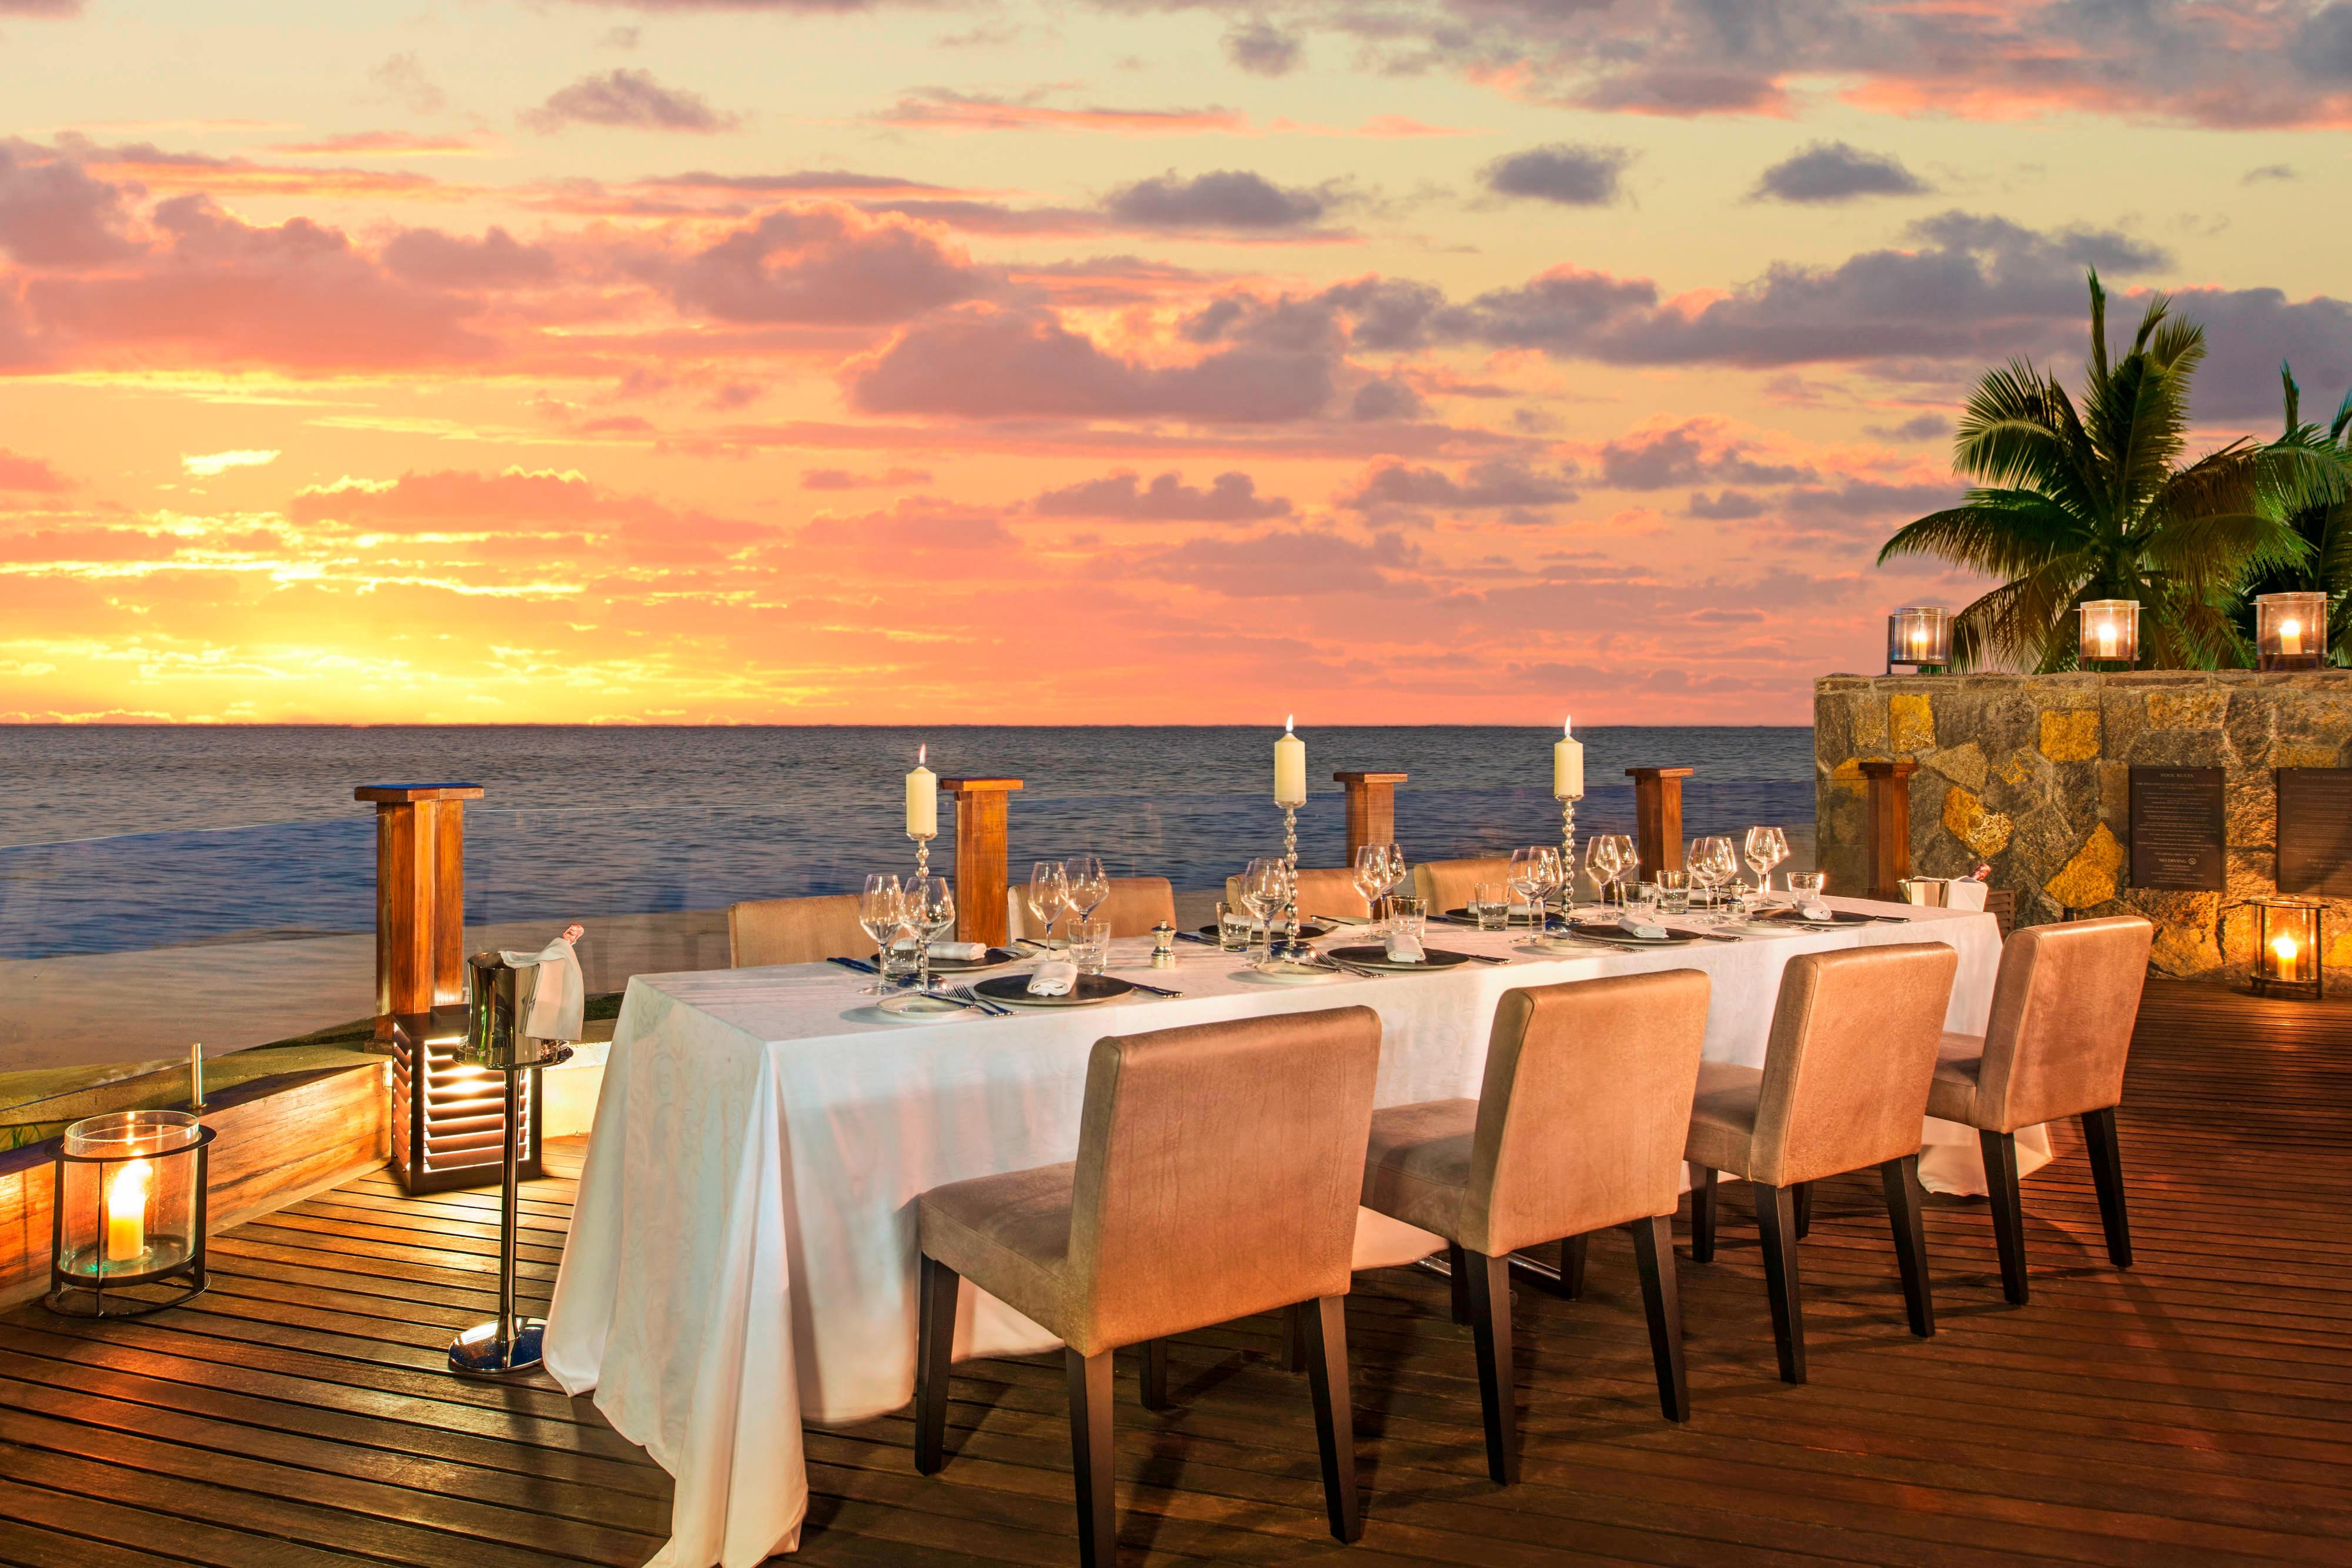 The St. Regis Villa - Dining on the Terrace